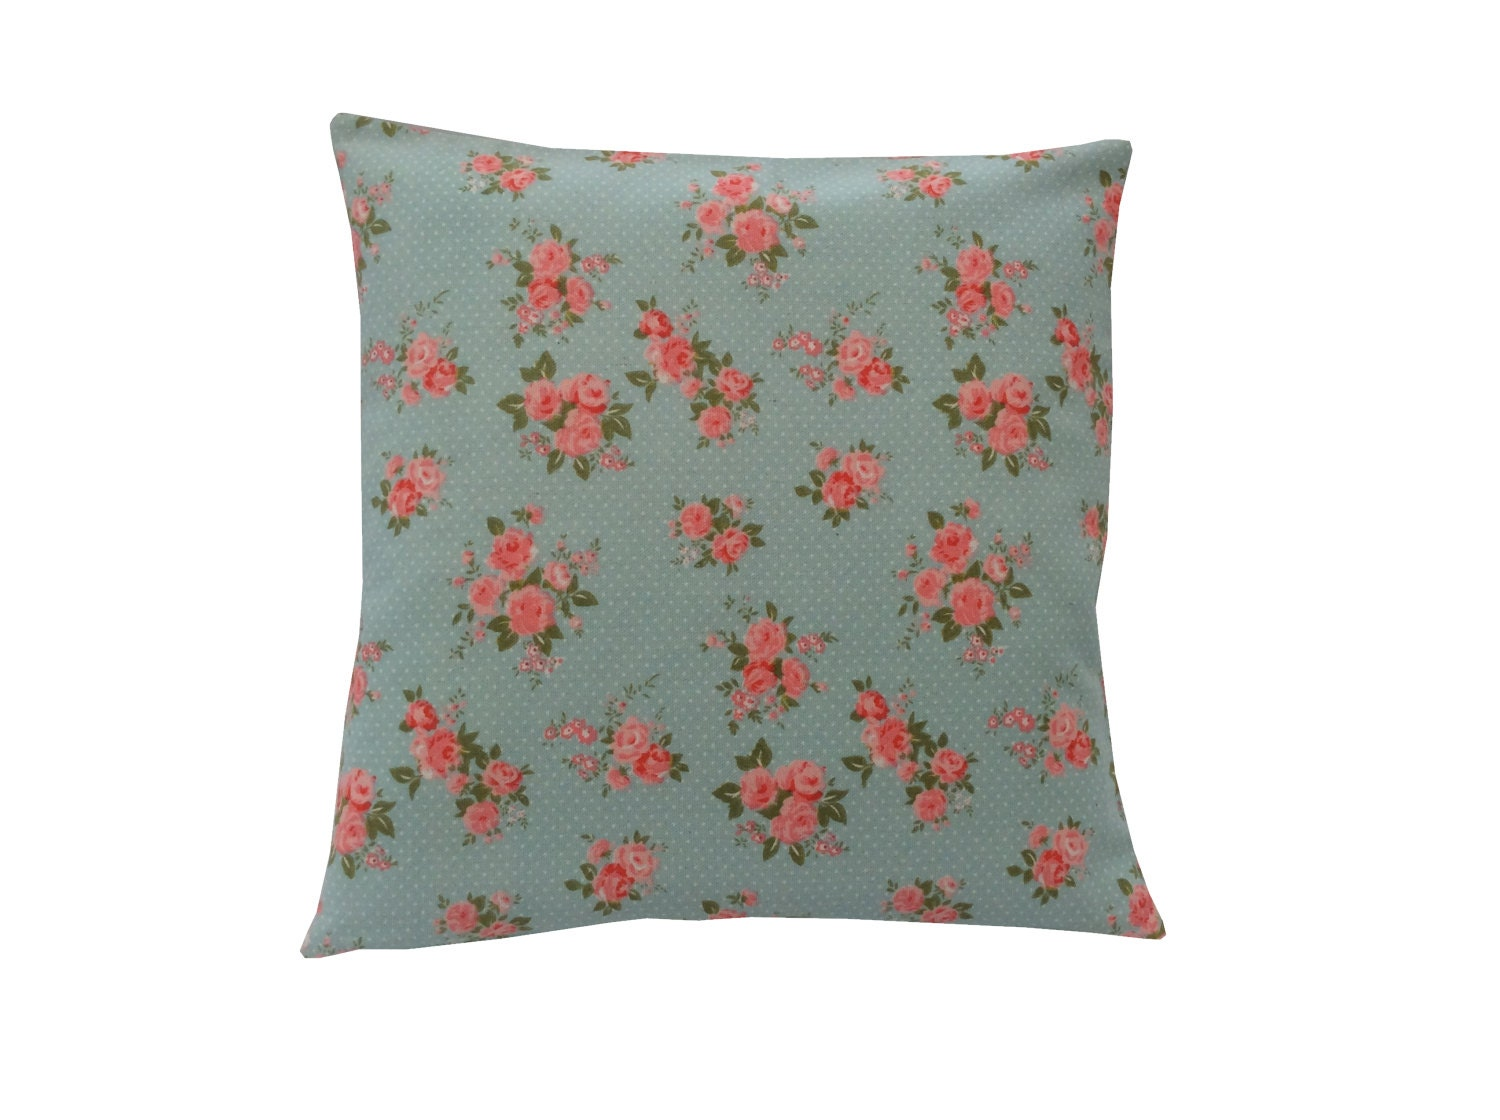 duck egg blue cushion cover pillow case pink vintage ditsy. Black Bedroom Furniture Sets. Home Design Ideas